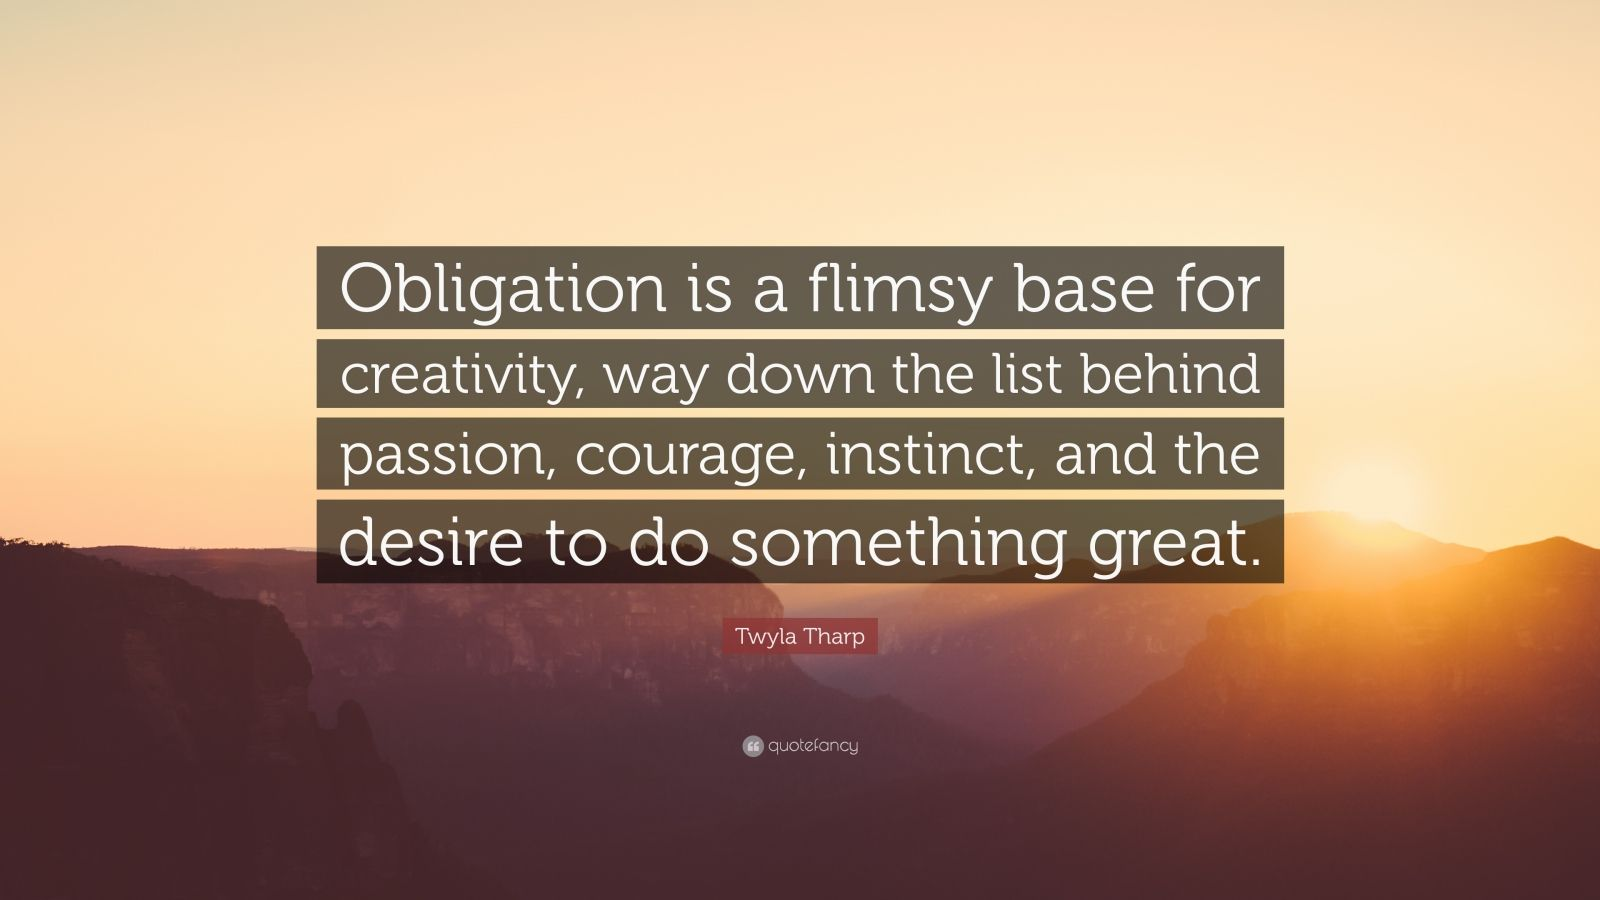 """Twyla Tharp Quote: """"Obligation is a flimsy base for creativity, way down the list behind passion, courage, instinct, and the desire to do something great."""""""